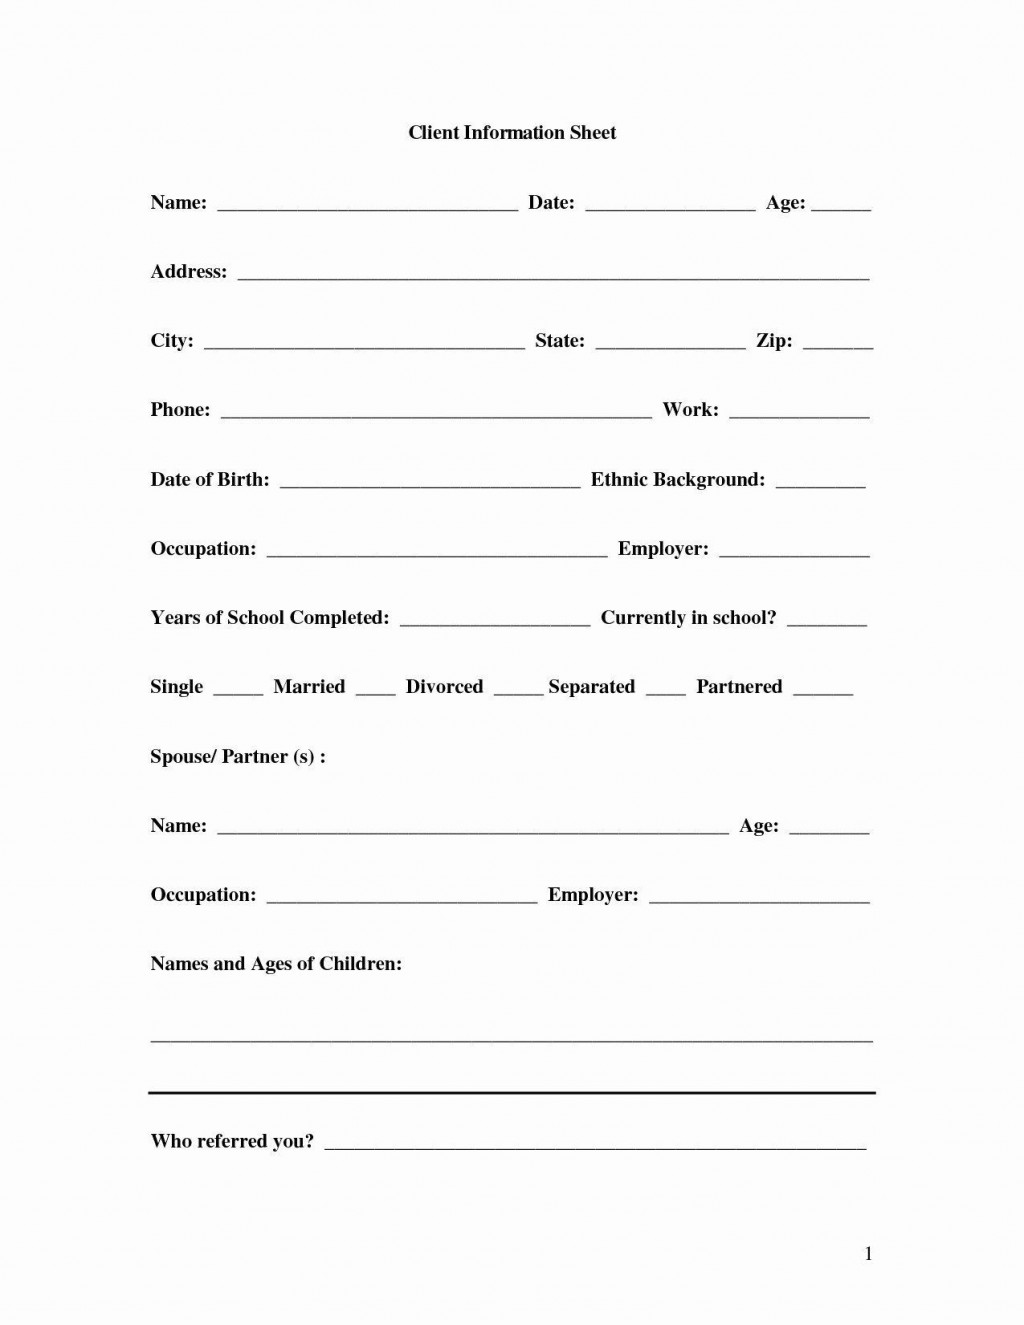 003 Formidable New Busines Client Information Form Template High Def Large